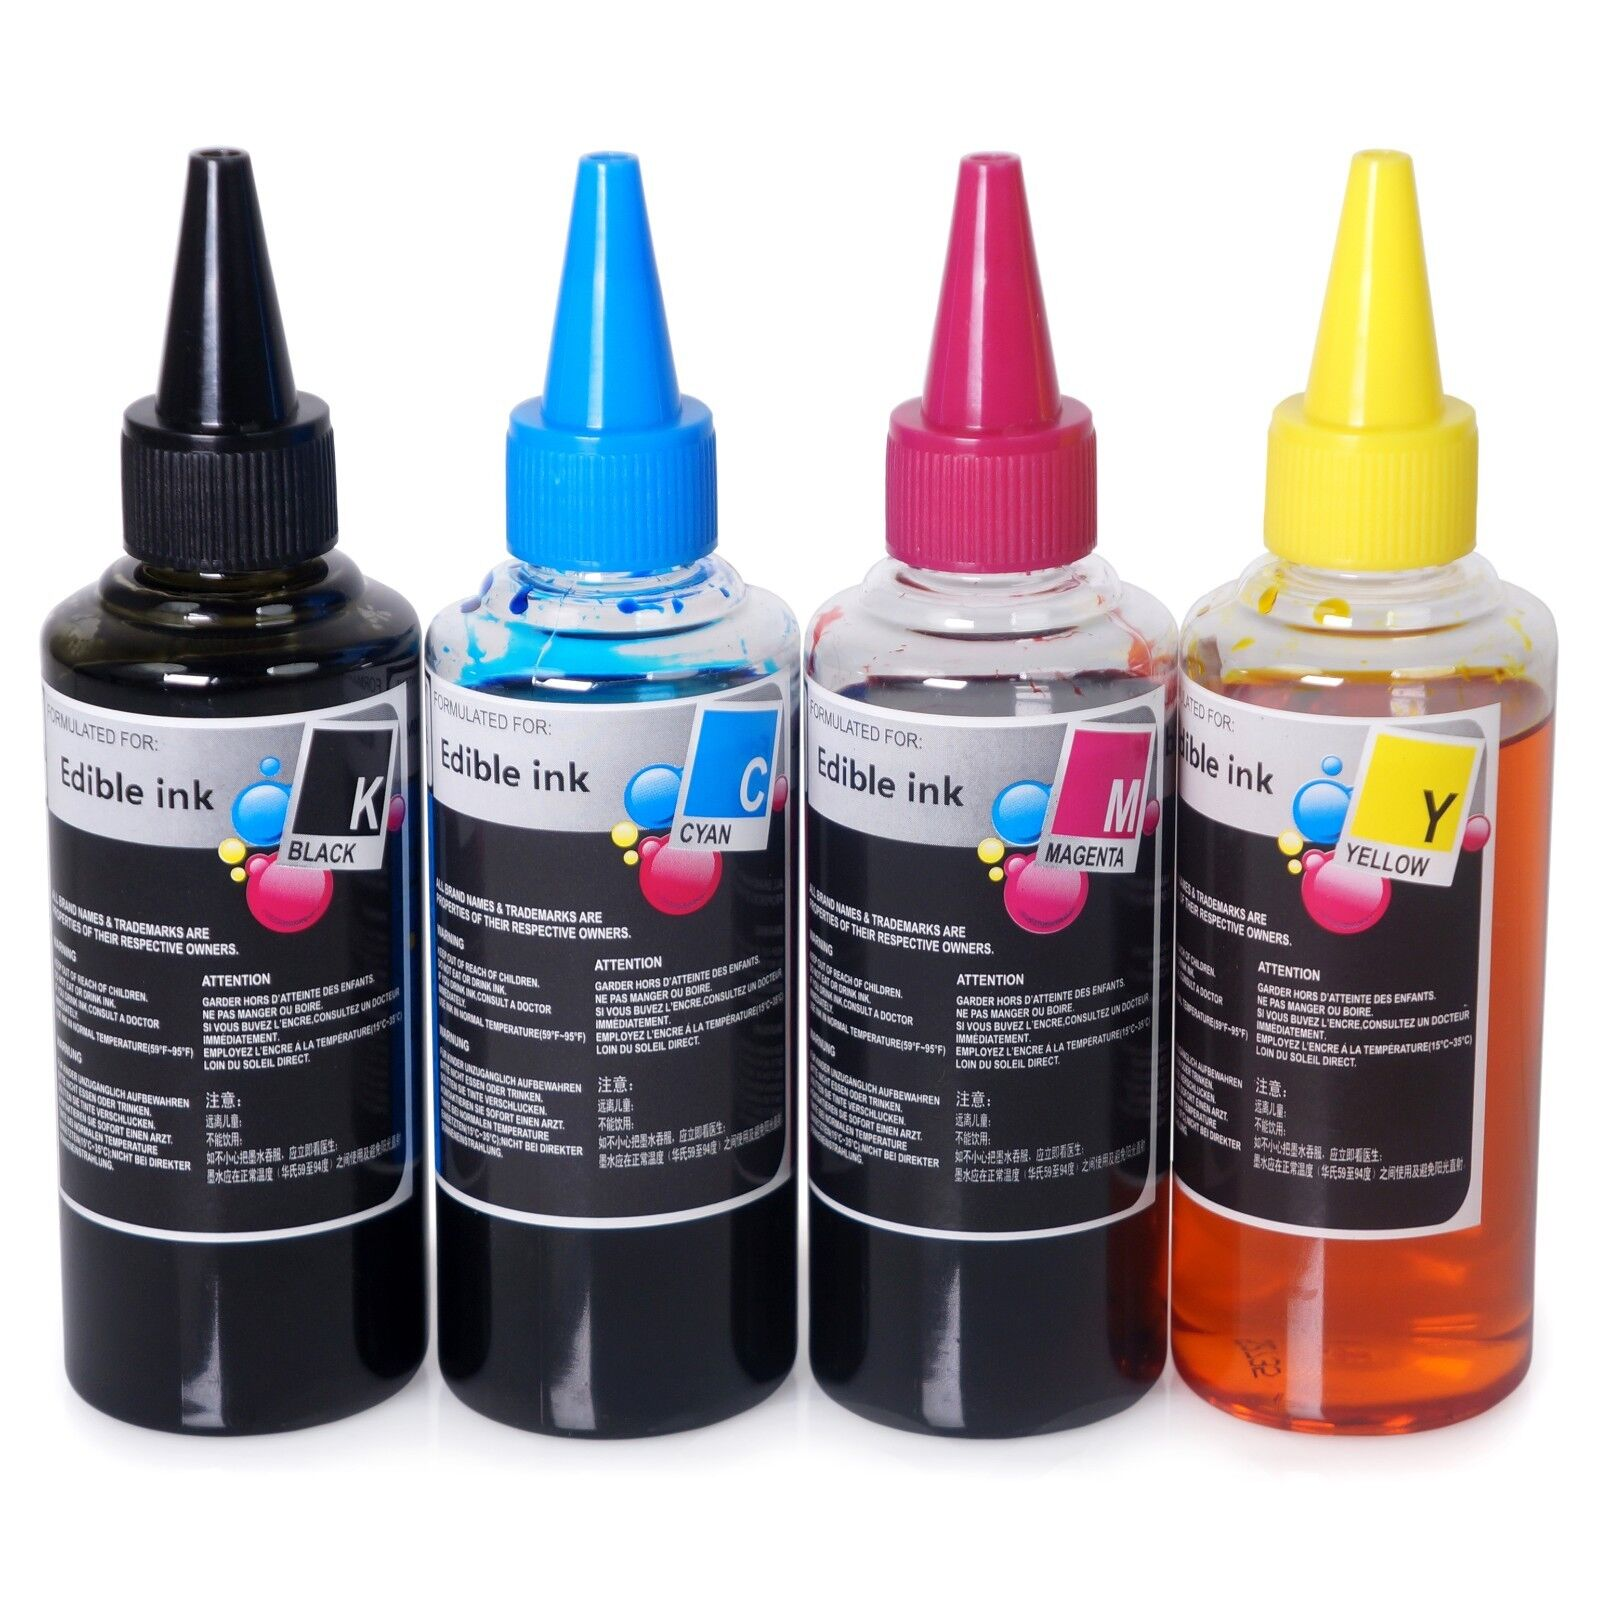 Details about Edible Ink Refill Bottle Set 13.5 oz (400ml) 4 Color for  Canon & Epson Printers